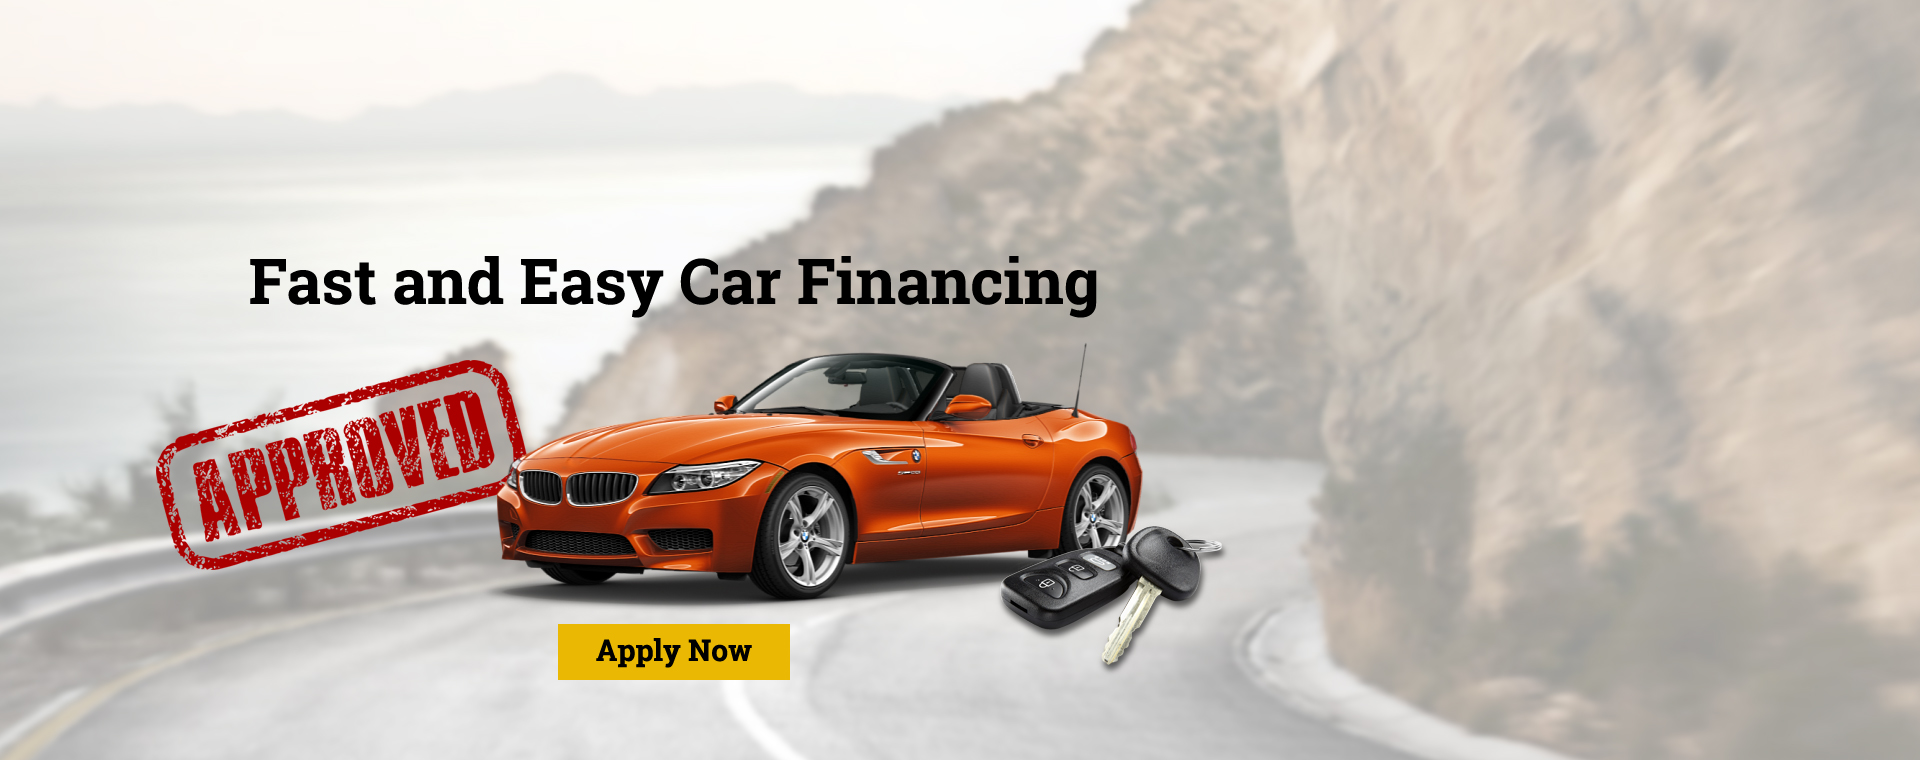 Car City Autos - Auto Financing